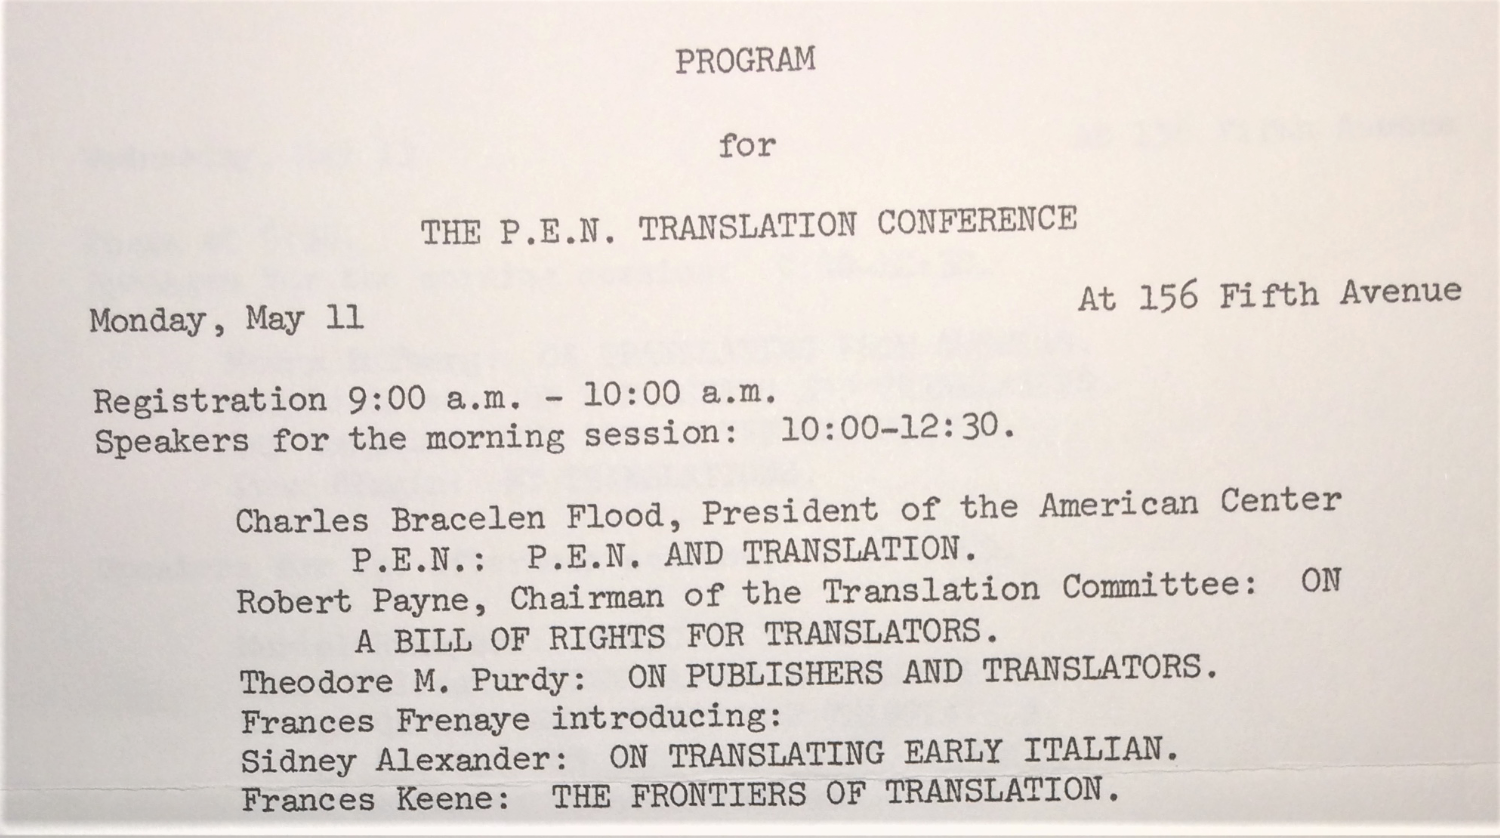 Program for the P.E.N. Translation Conference